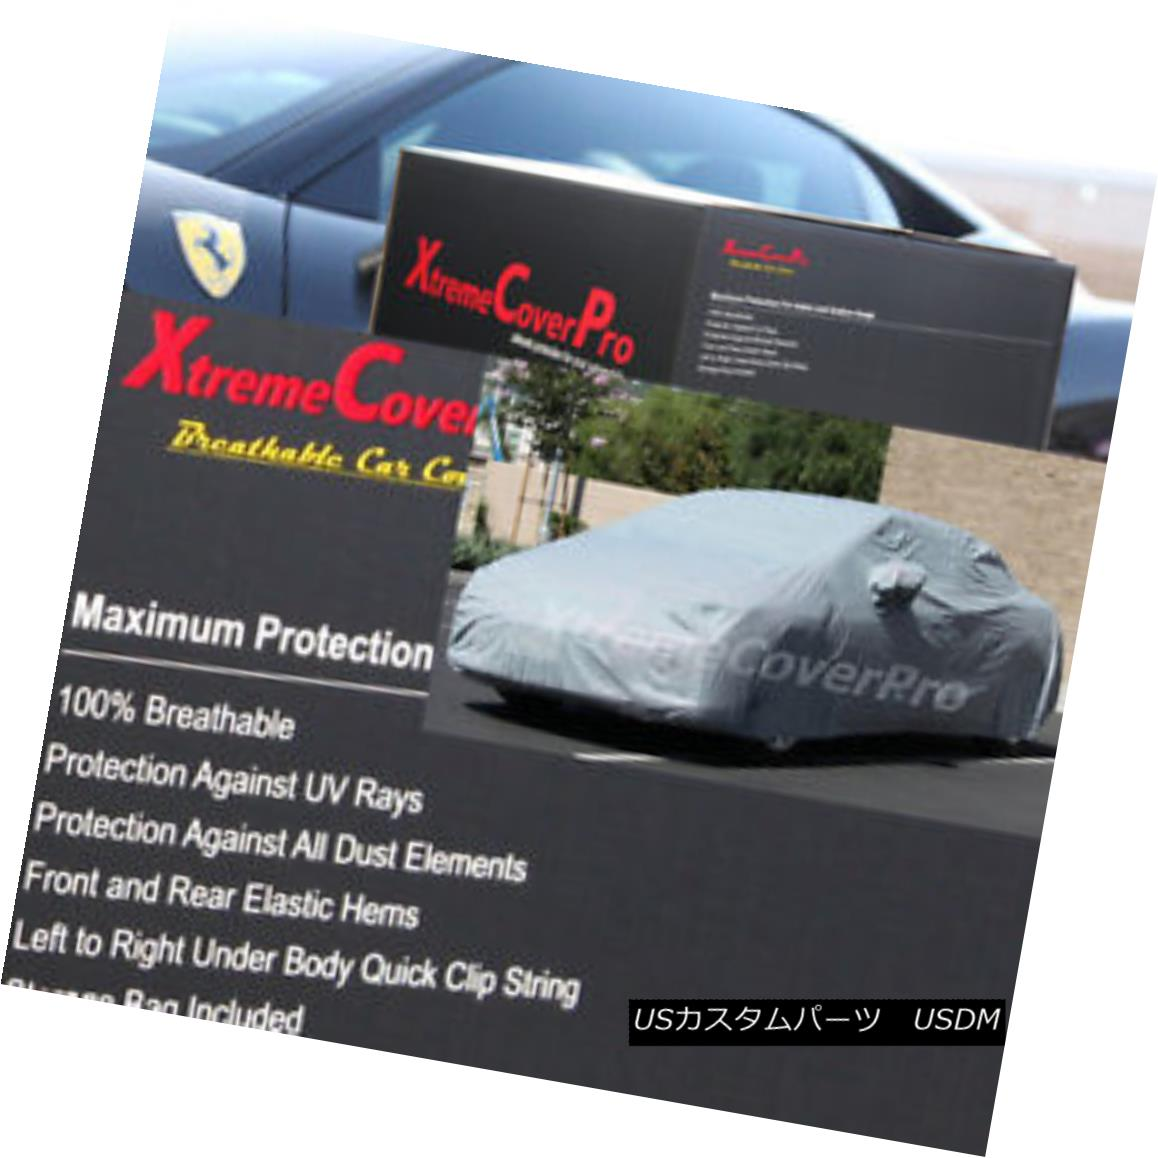 カーカバー 1994 1995 Mercedes SL320 SL500 SL600 Breathable Car Cover w/MirrorPocket 1994年1995年メルセデスSL320 SL500 SL600通気性車カバー付きMirrorPocket